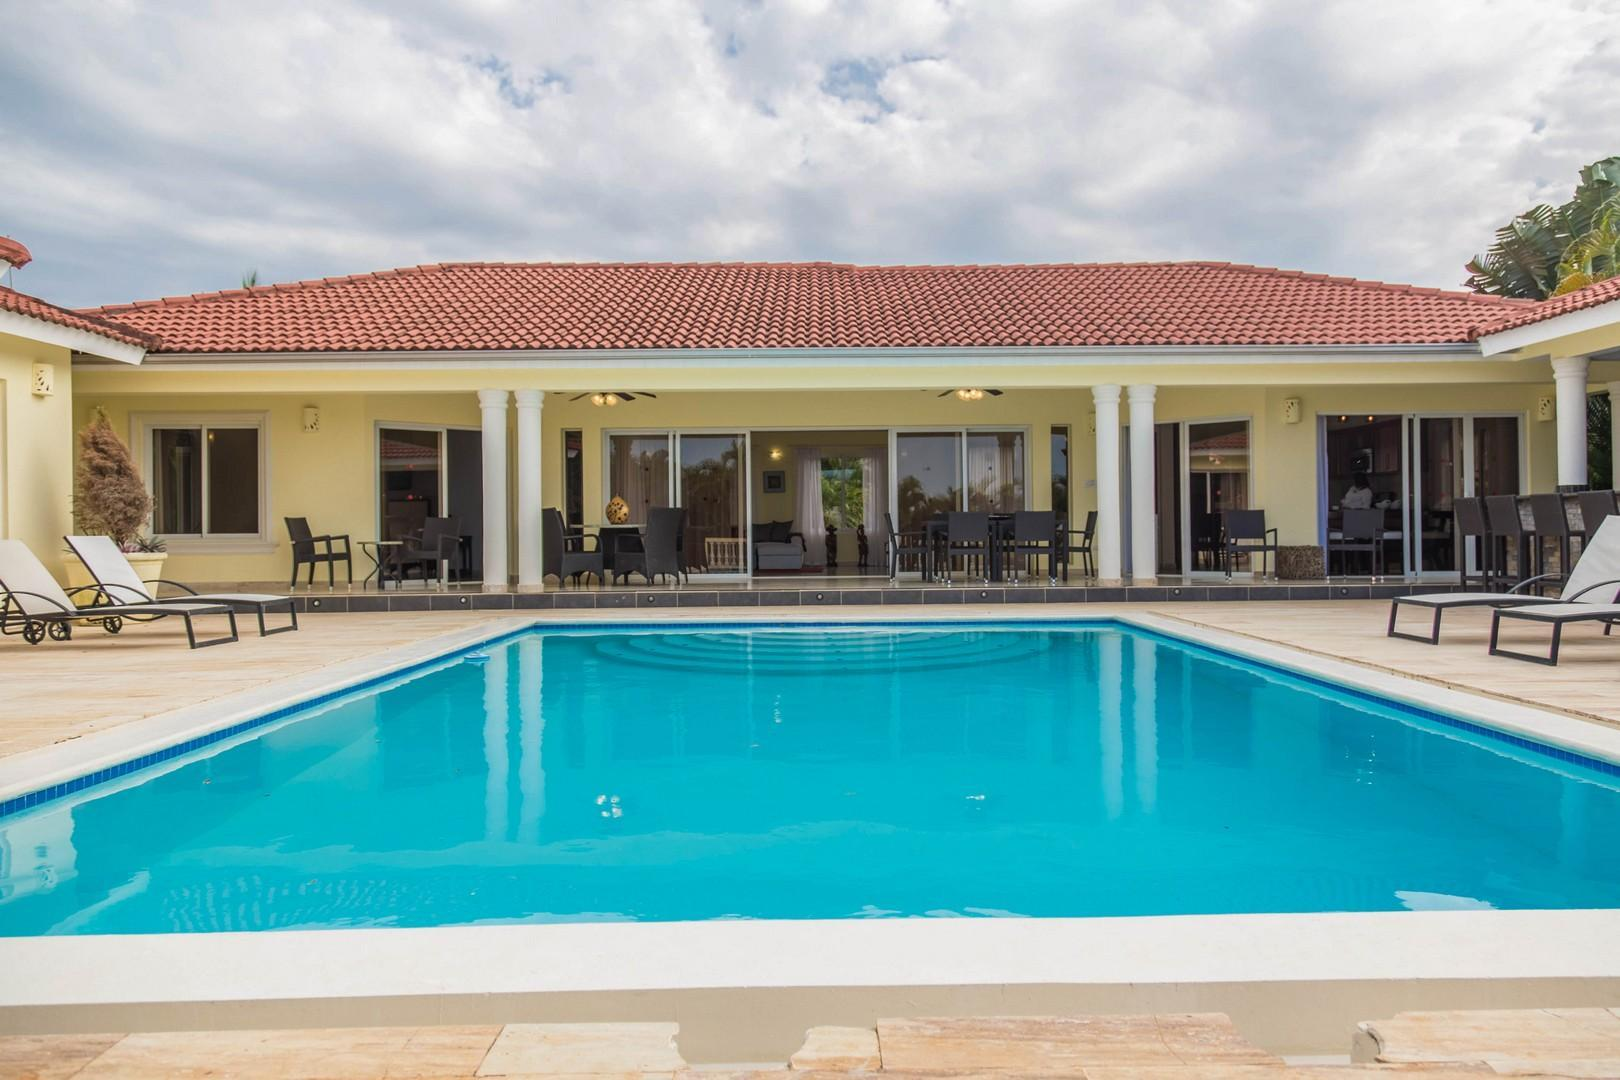 Private Villa! All bedrooms /w TVs and in livingroom